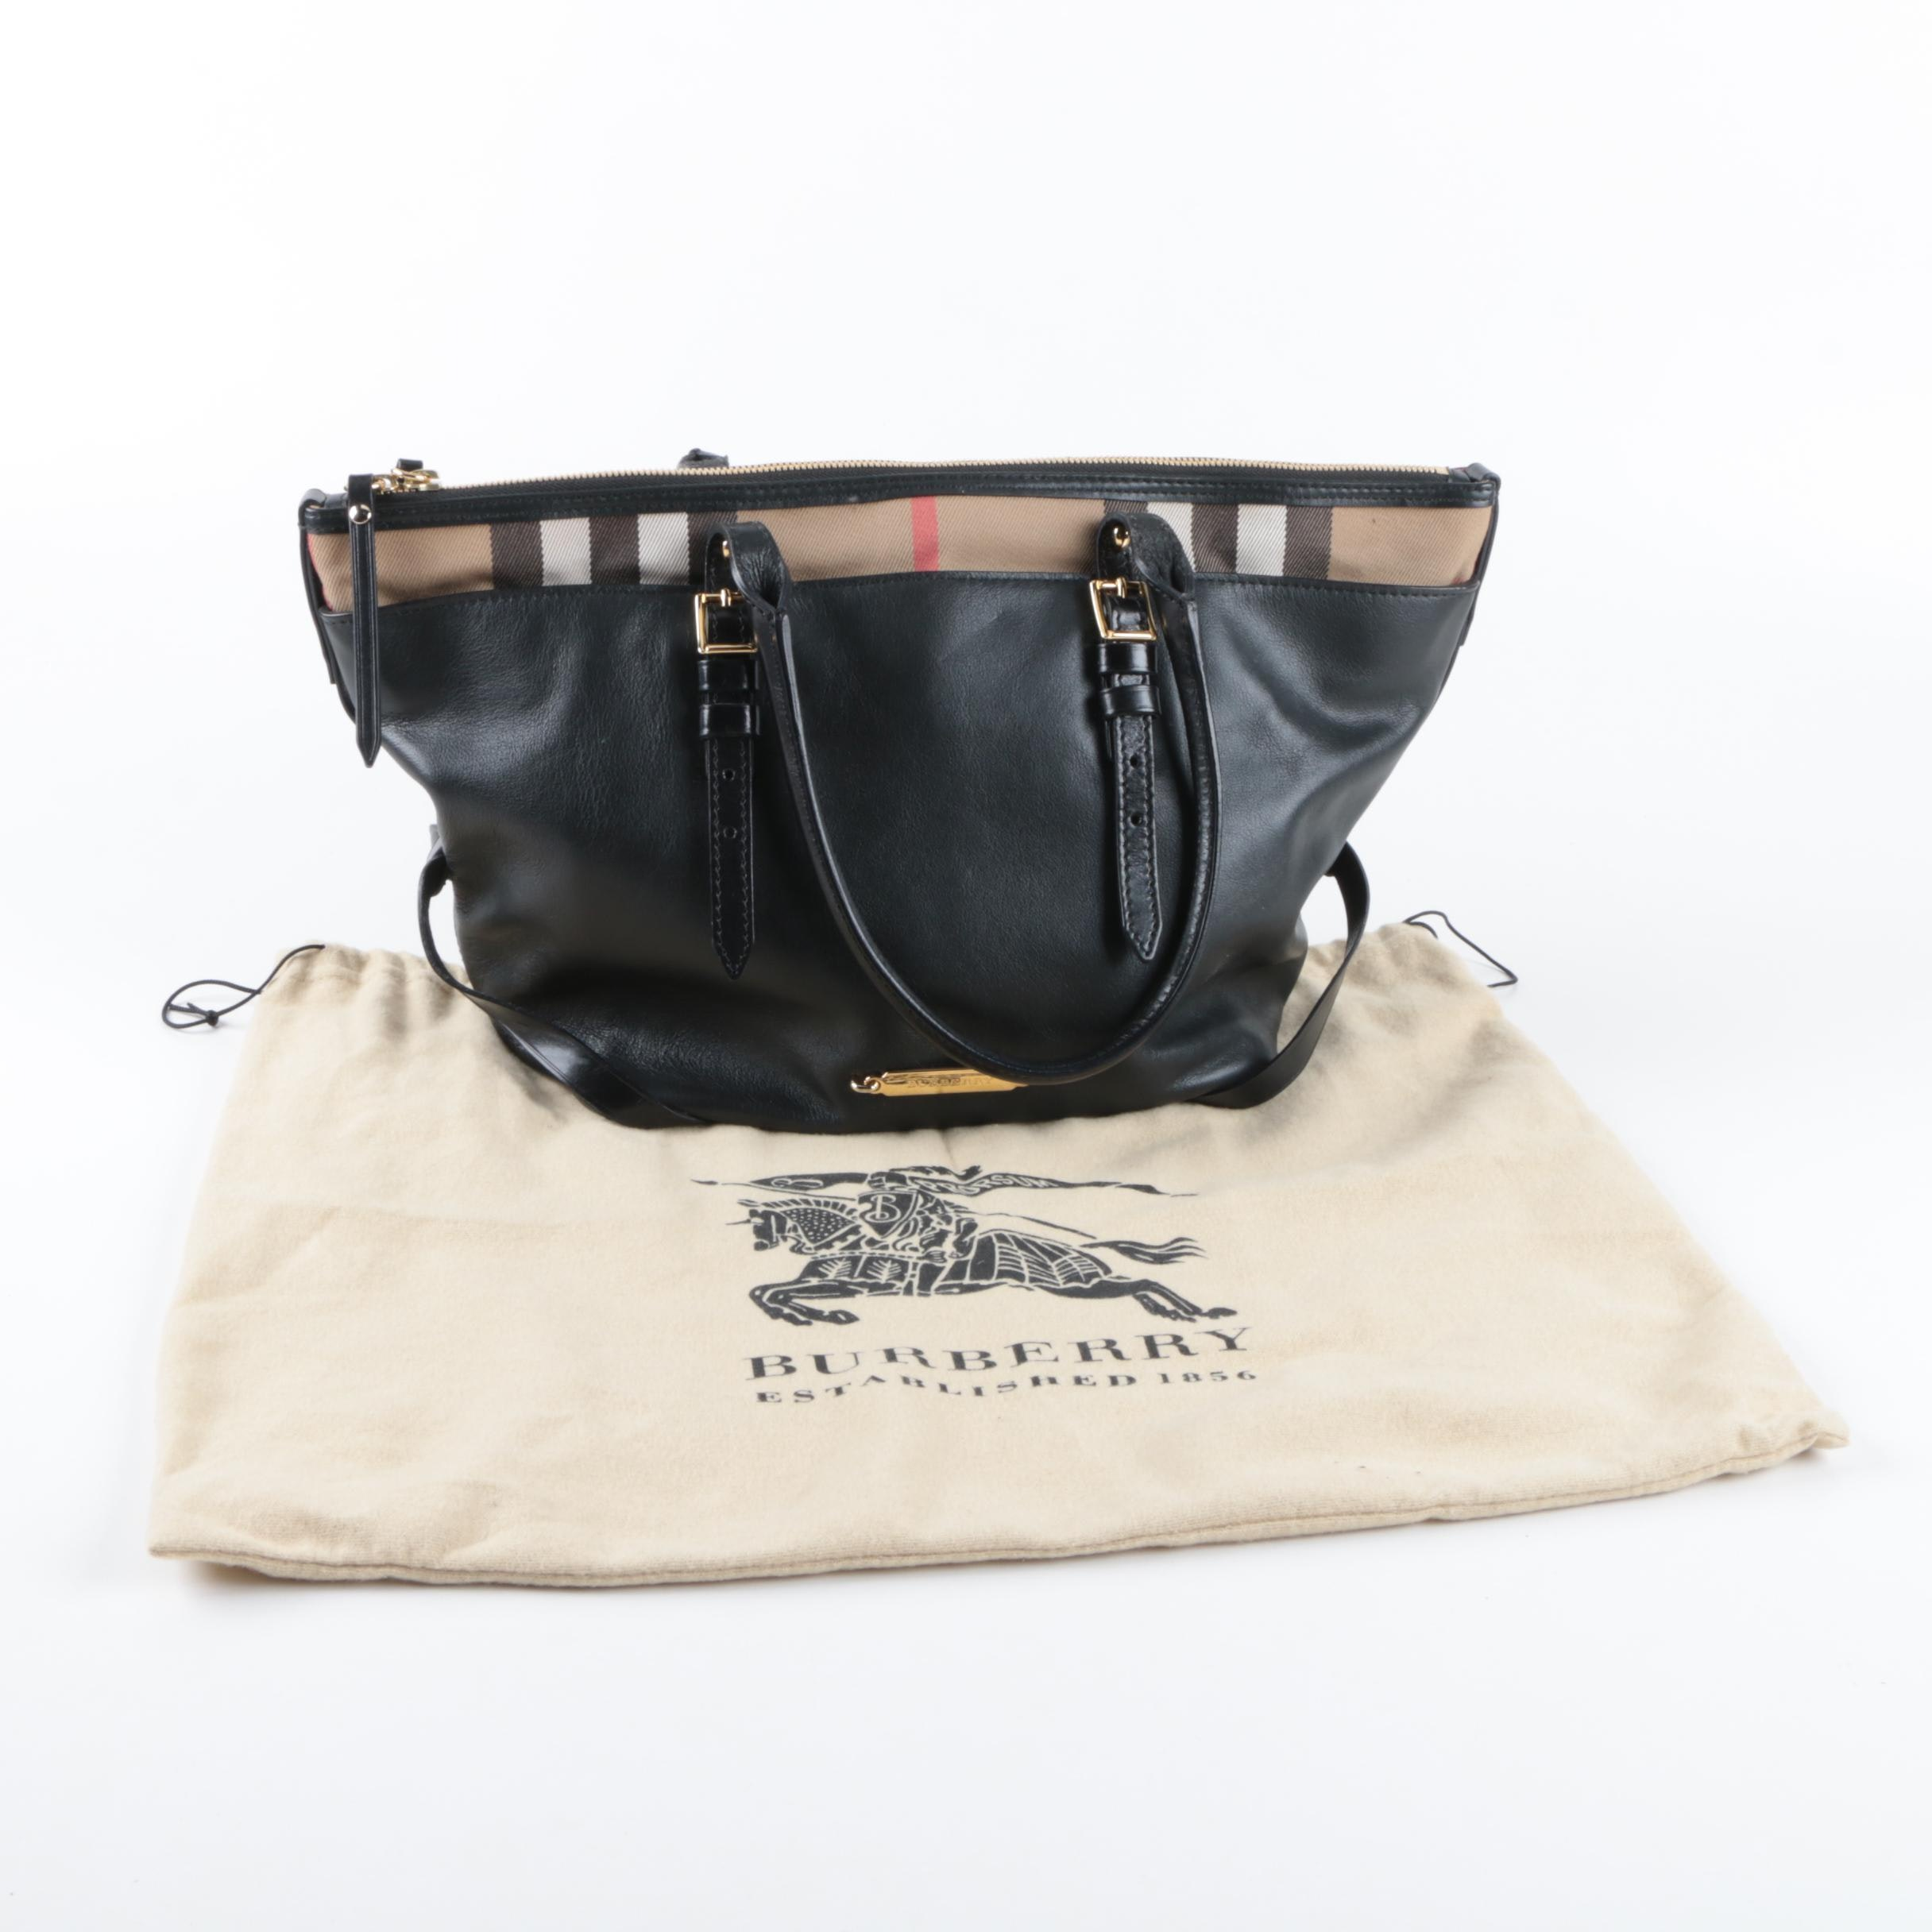 Burberry Bridle House Check Salisbury Black Leather Tote